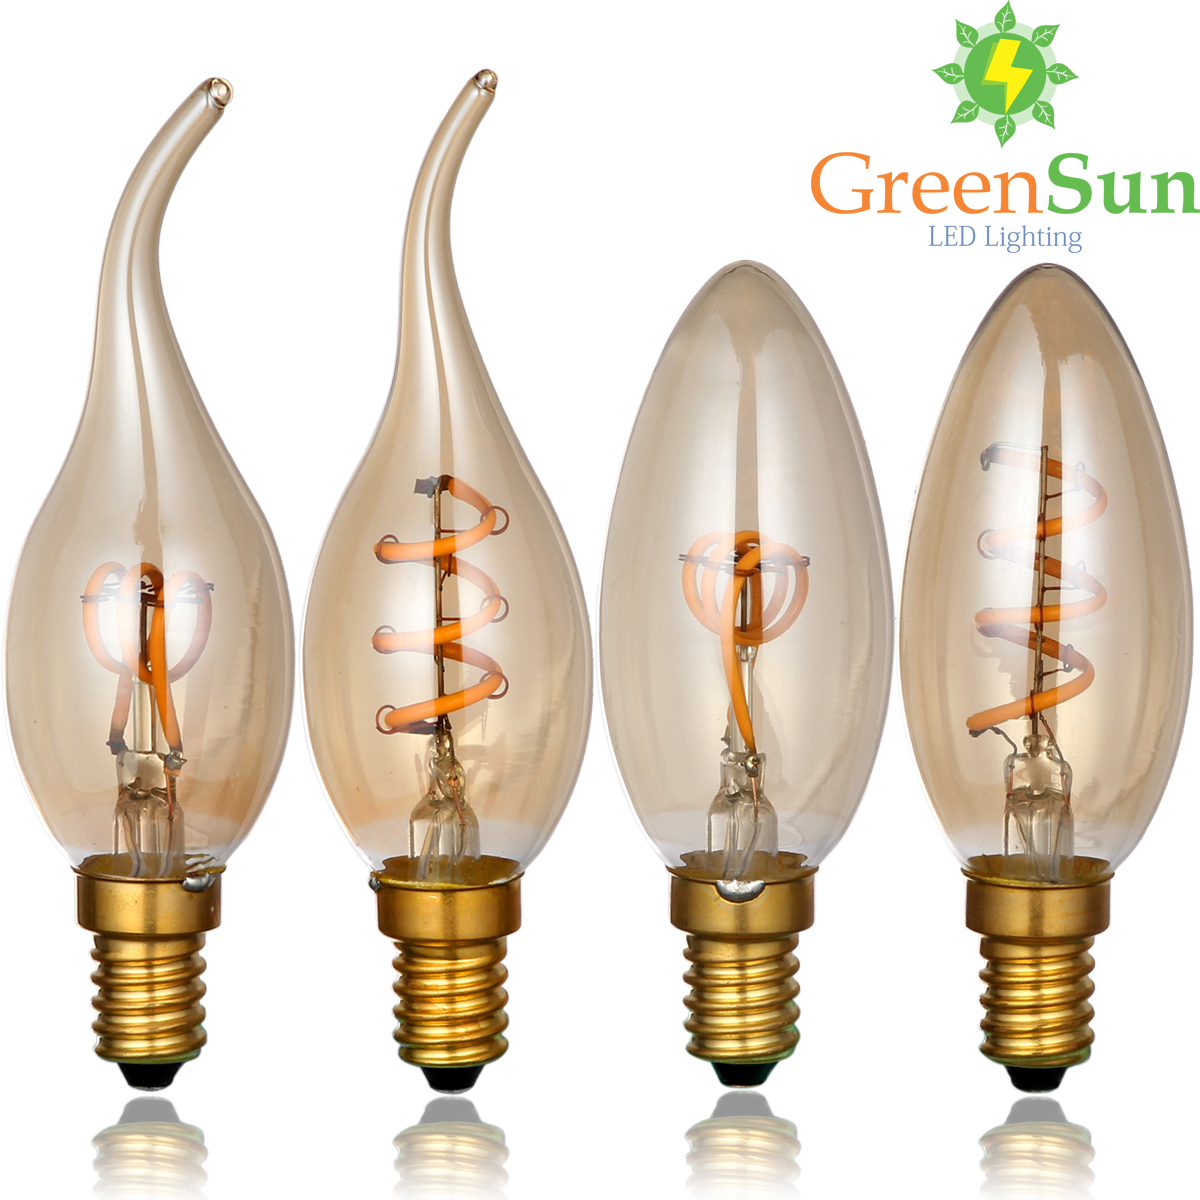 Gold Tint,E14 Edison LED Filament Bulb,C35 Vintage Spiral Lamp,Super warm 2200K,Soft Flexible Filament Cob LED Bulb,Dimmable AC 5pcs e27 led bulb 2w 4w 6w vintage cold white warm white edison lamp g45 led filament decorative bulb ac 220v 240v